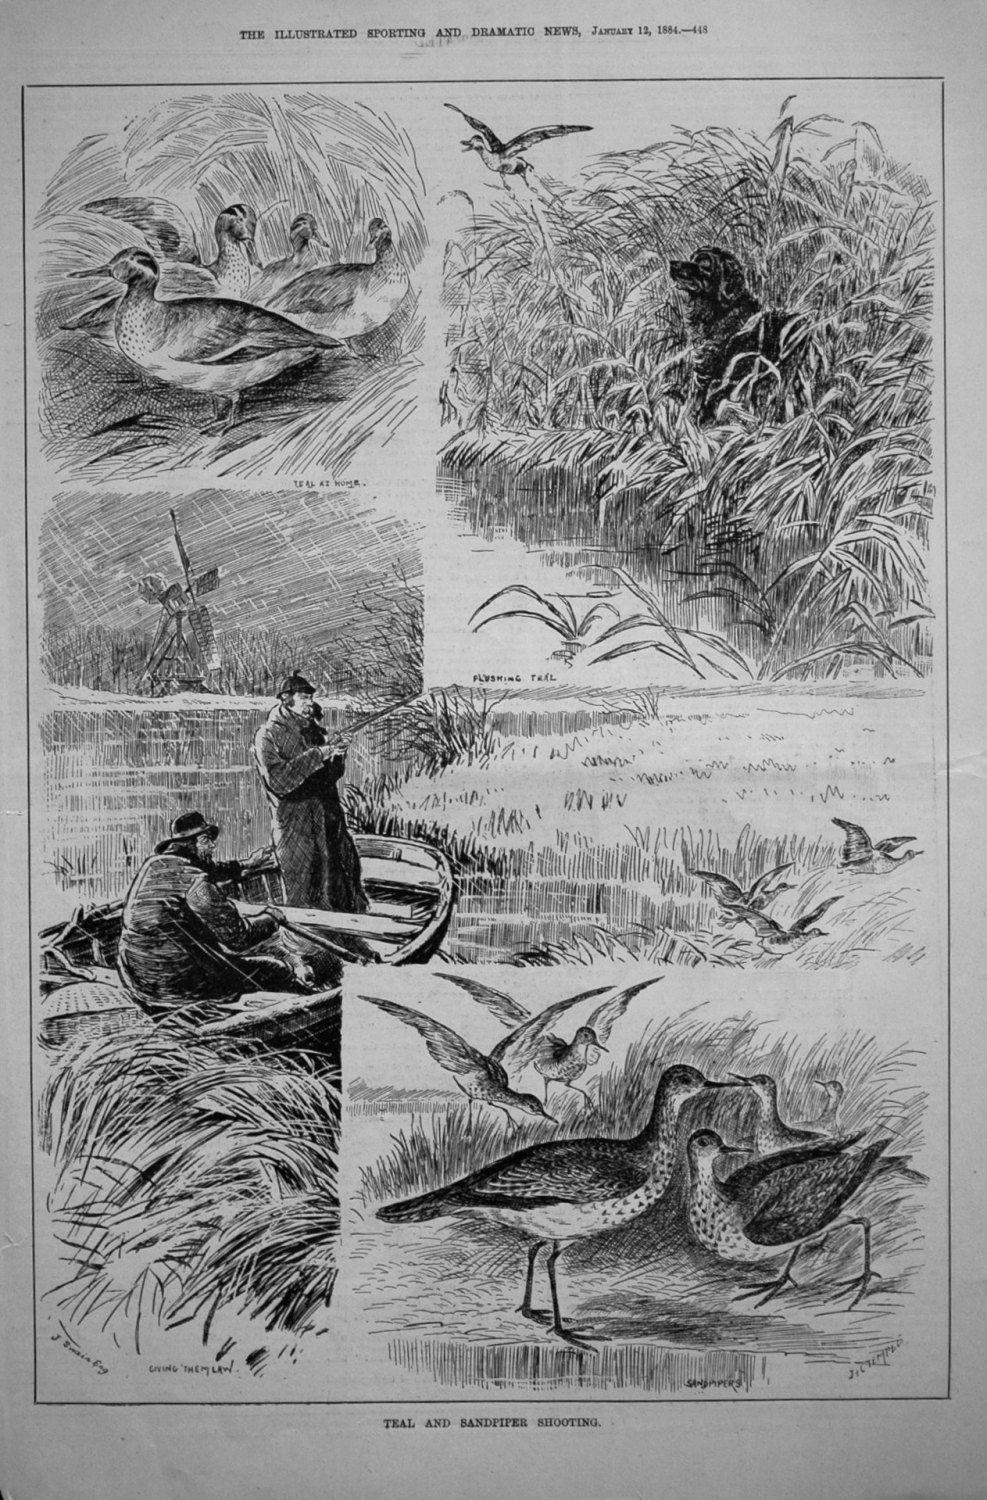 Teal and Sandpiper Shooting. 1884